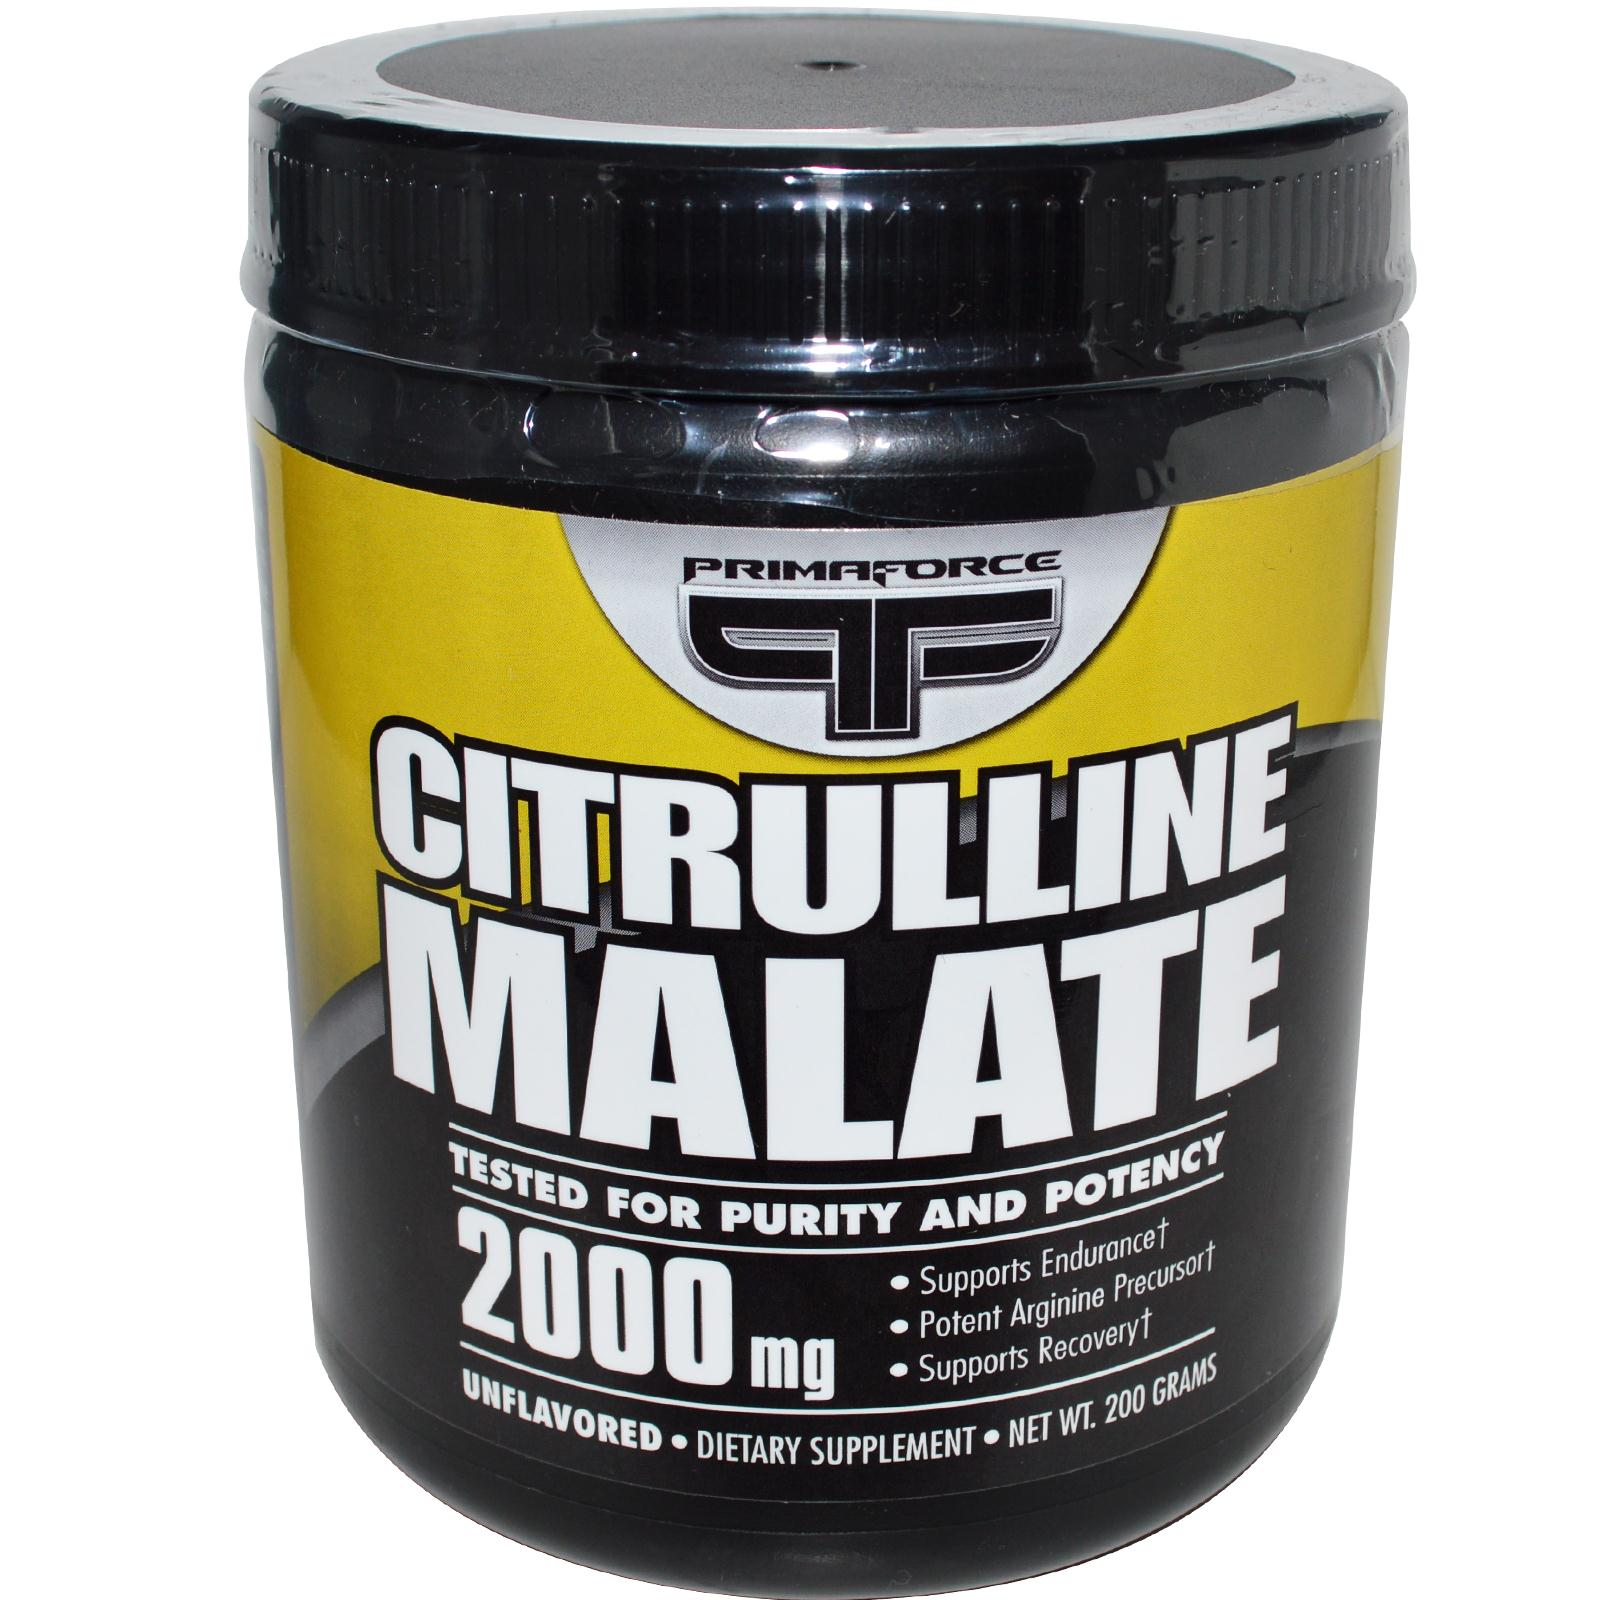 How much l-citrulline should i take